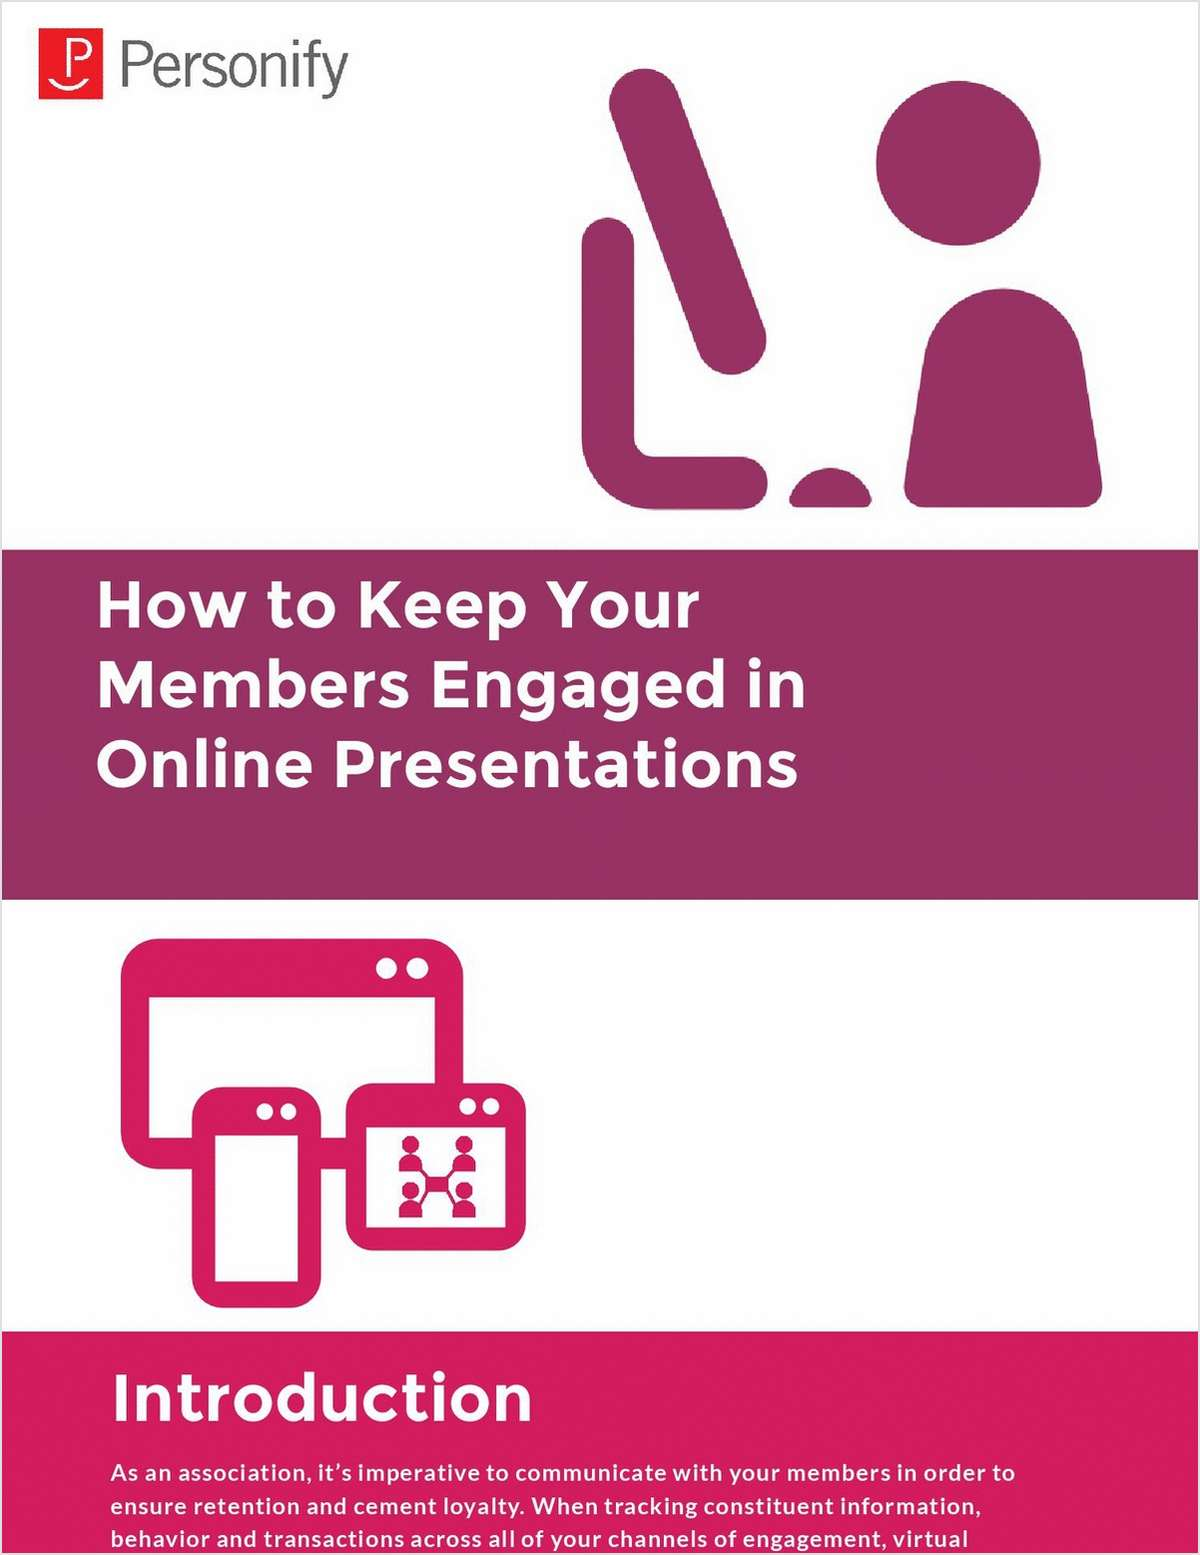 How to Keep Your Members Engaged in Online Presentations